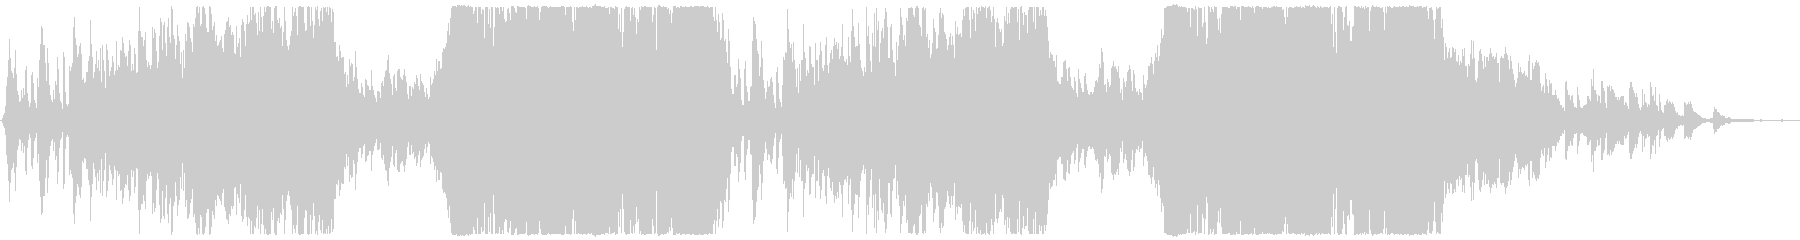 Positive grand pop orchestra's unreproduced waveform